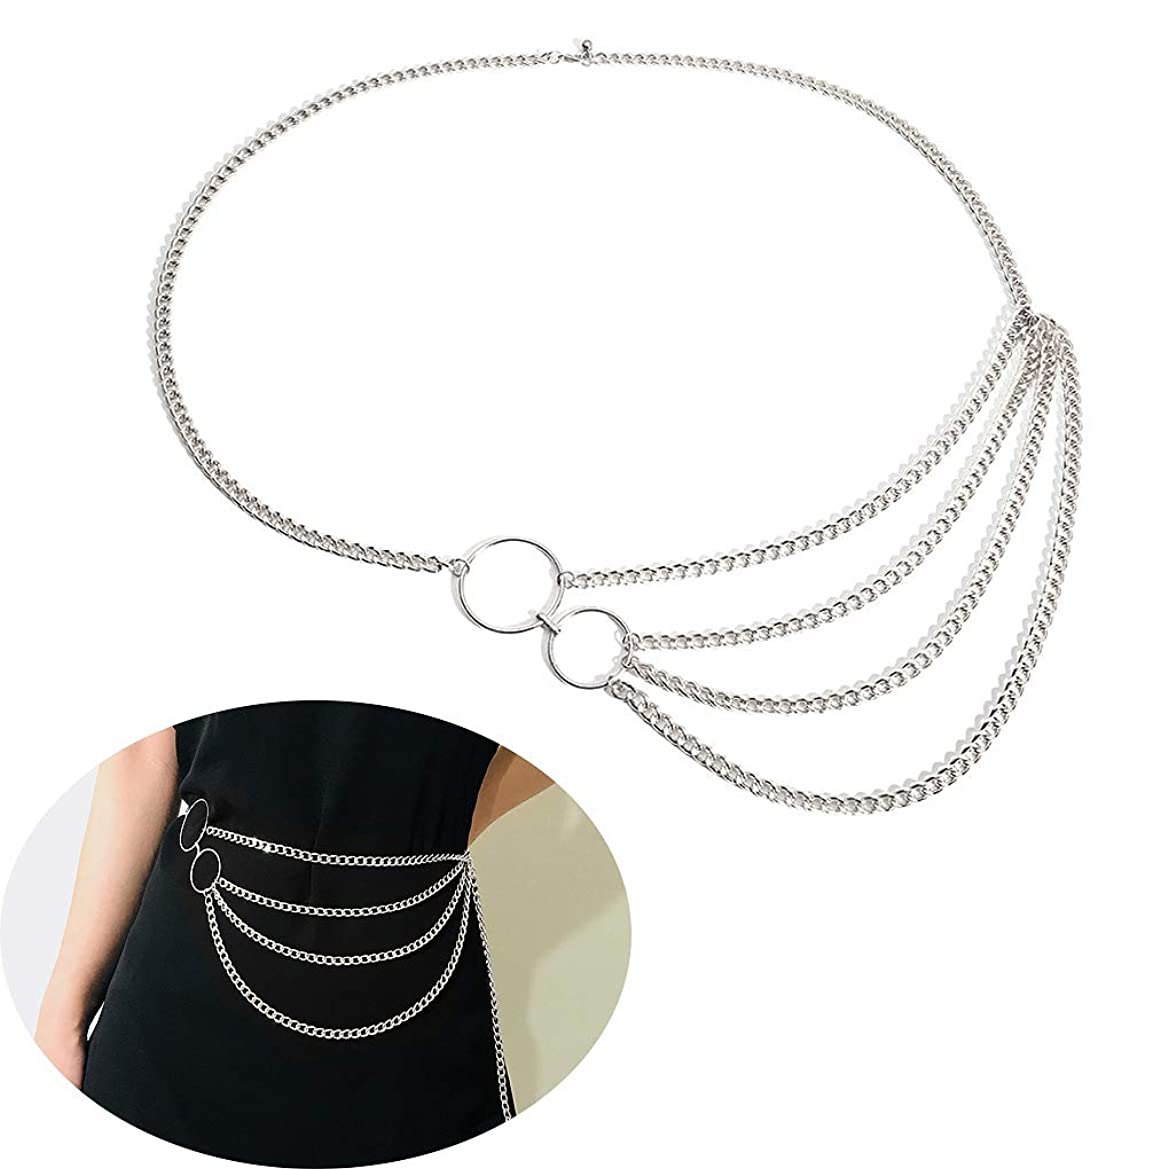 Jurxy Multilayer Alloy Waist Chain Body Chain for Women Waist Belt Pendant Belly Chain Adjustable Body Harness for Jeans Dresses – Silver Style 6 ecwpqxzkfz3